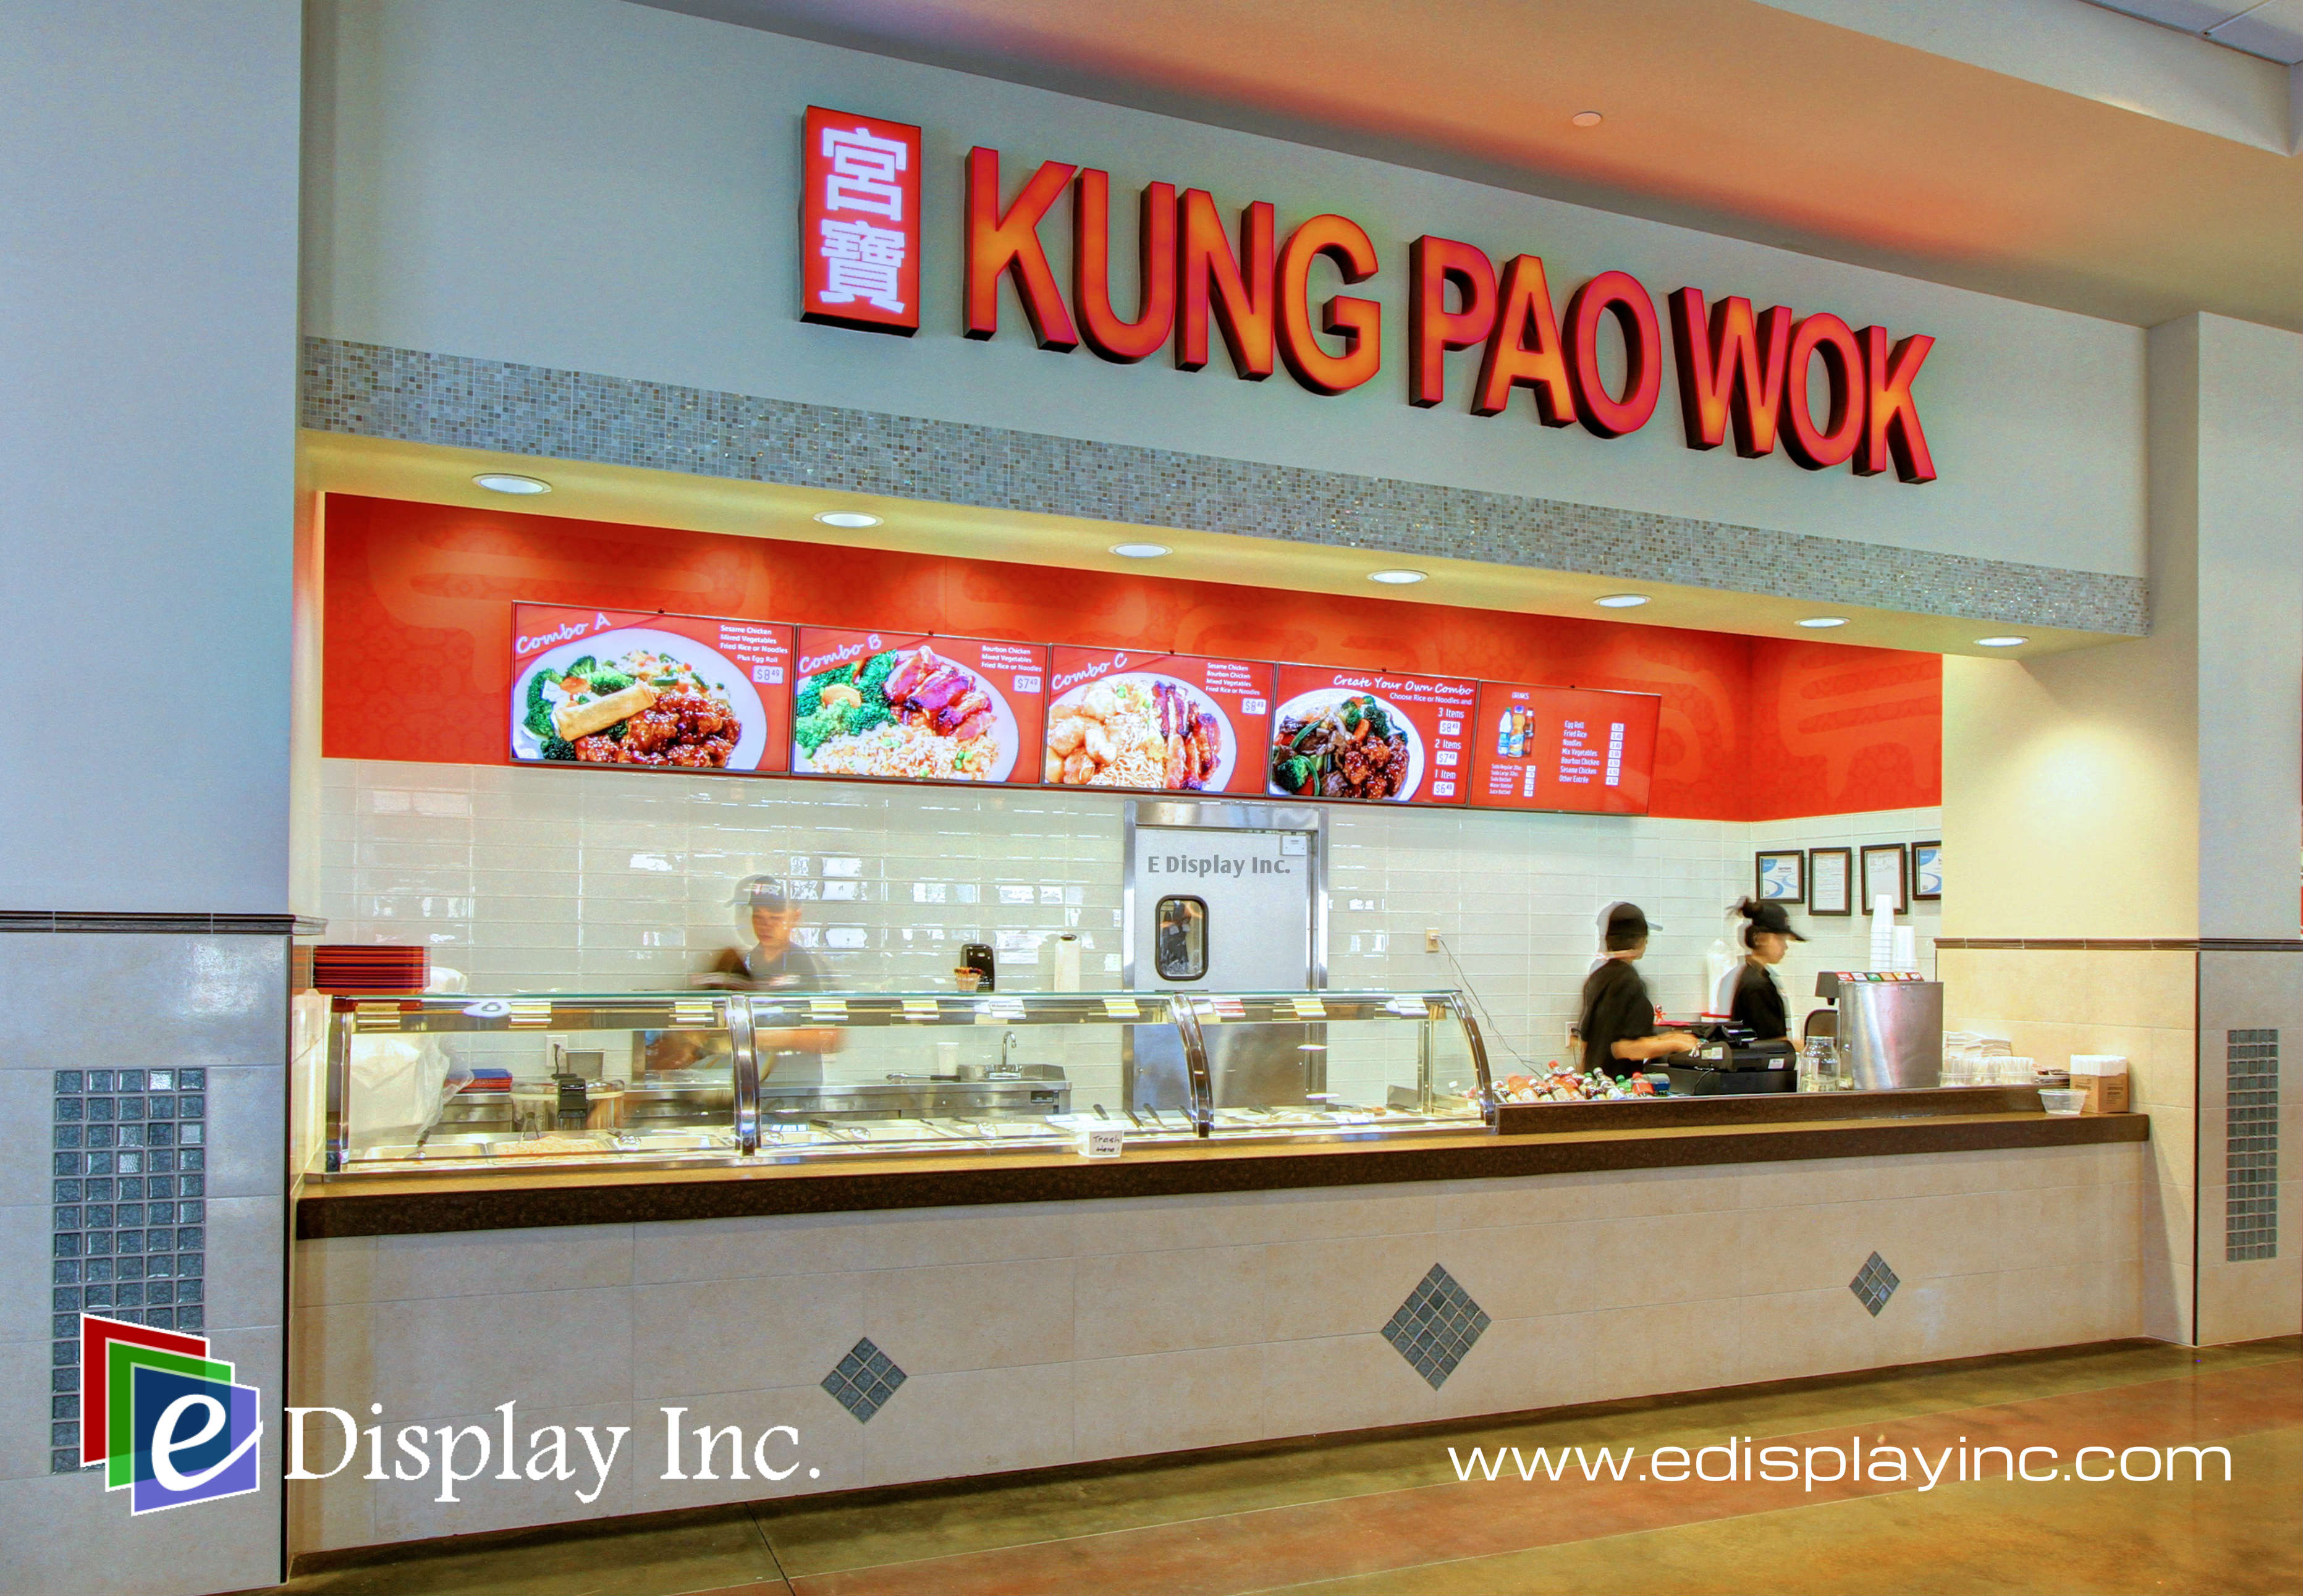 E Display Deploys Digital Menu Boards at Kung Pao Wok in Charlotte Premium Outlets in Charlotte, North Carolina.